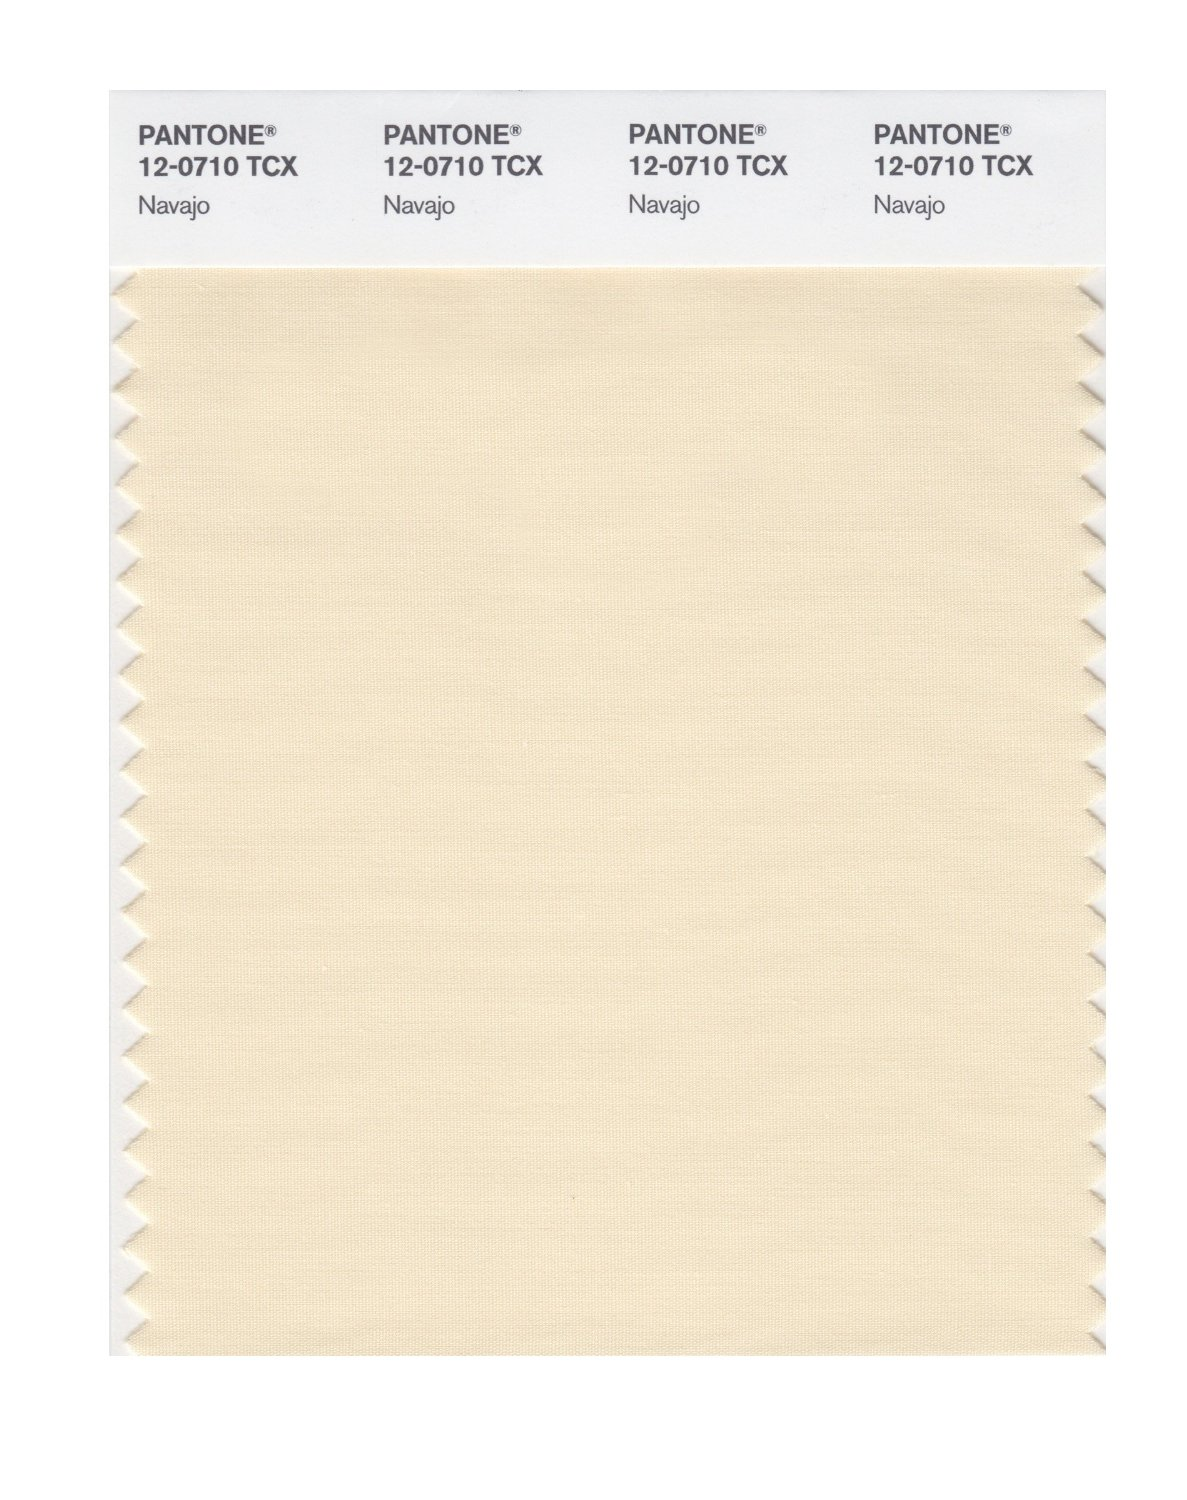 Pantone Smart Swatch 12-0710 Navajo